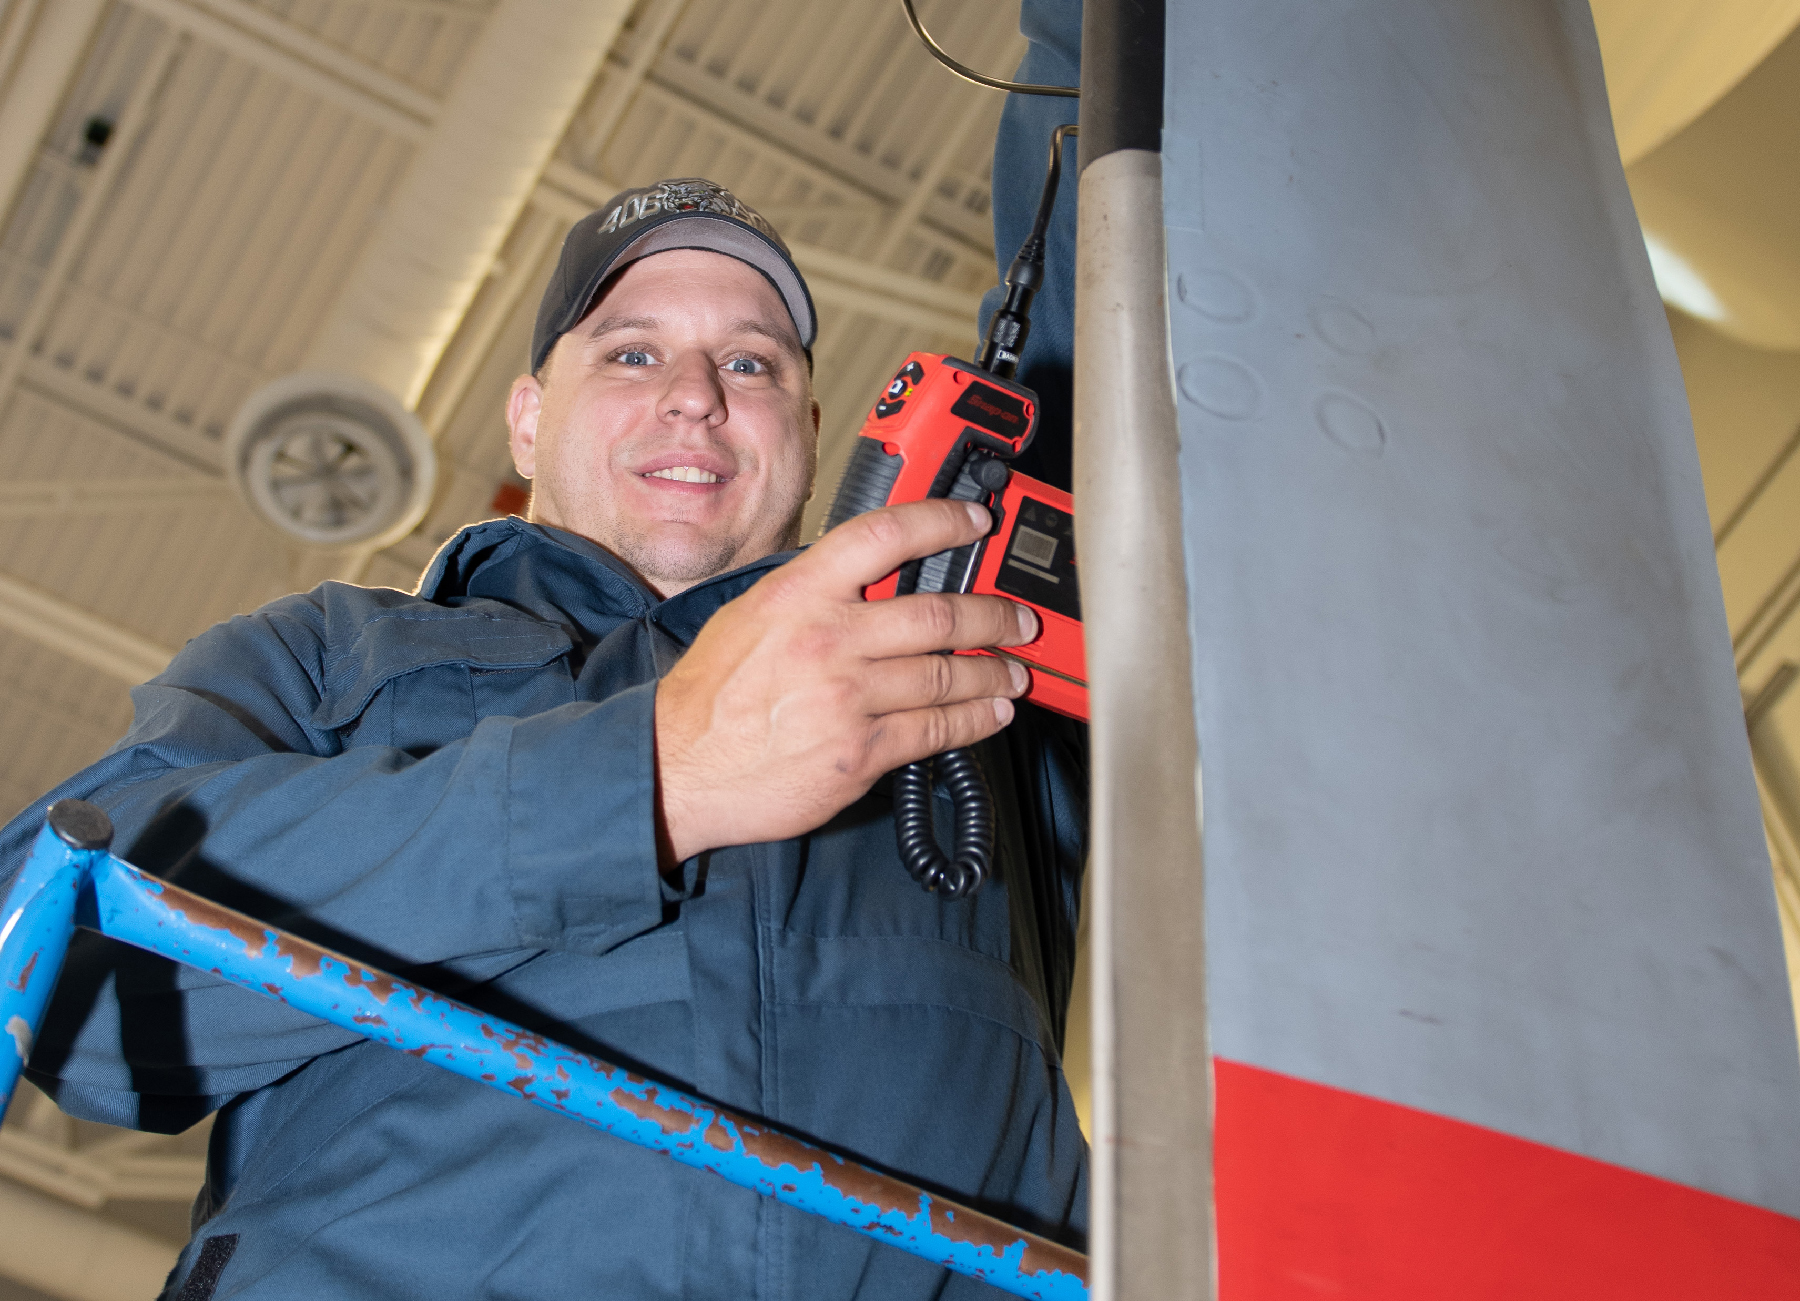 On October 2, 2019, 406 Squadron aviation systems technician Master Corporal Gabriel Auclair inspects components of the tail rotor on a CH-148 Cyclone Helicopter. PHOTO: Leading Seaman Laurance Clarke, SW05-2019-0447-003-